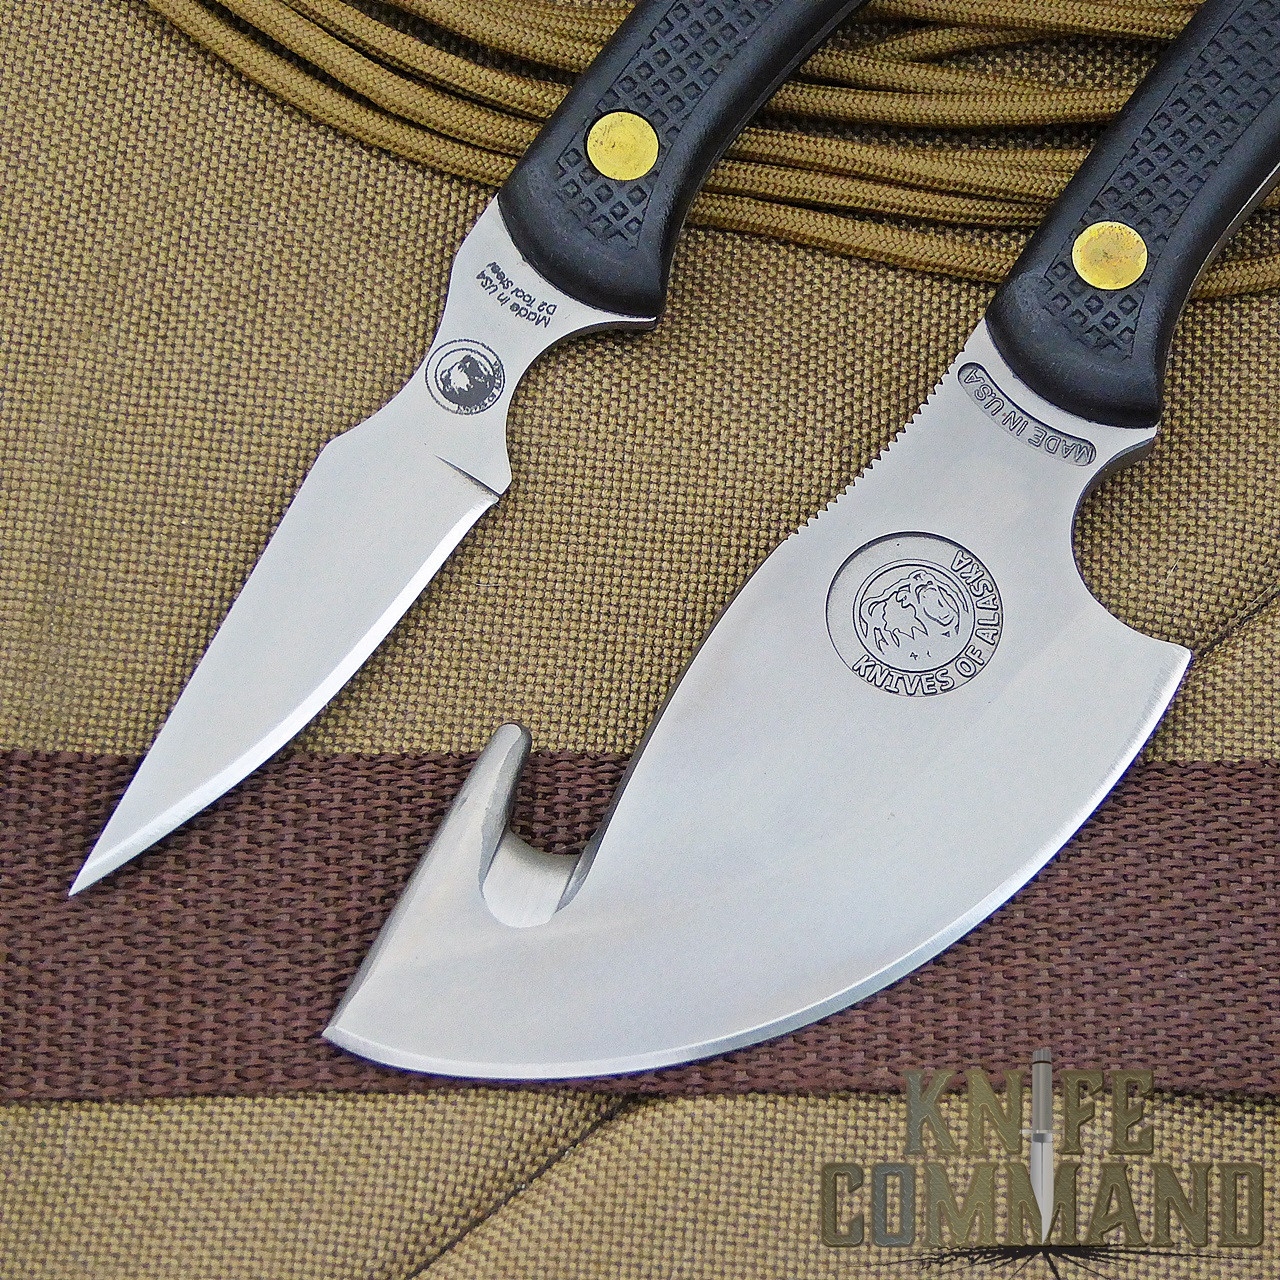 Knives of Alaska Light Hunter Suregrip Hunting Knife Combo.  For fine detail and heavy cutting.